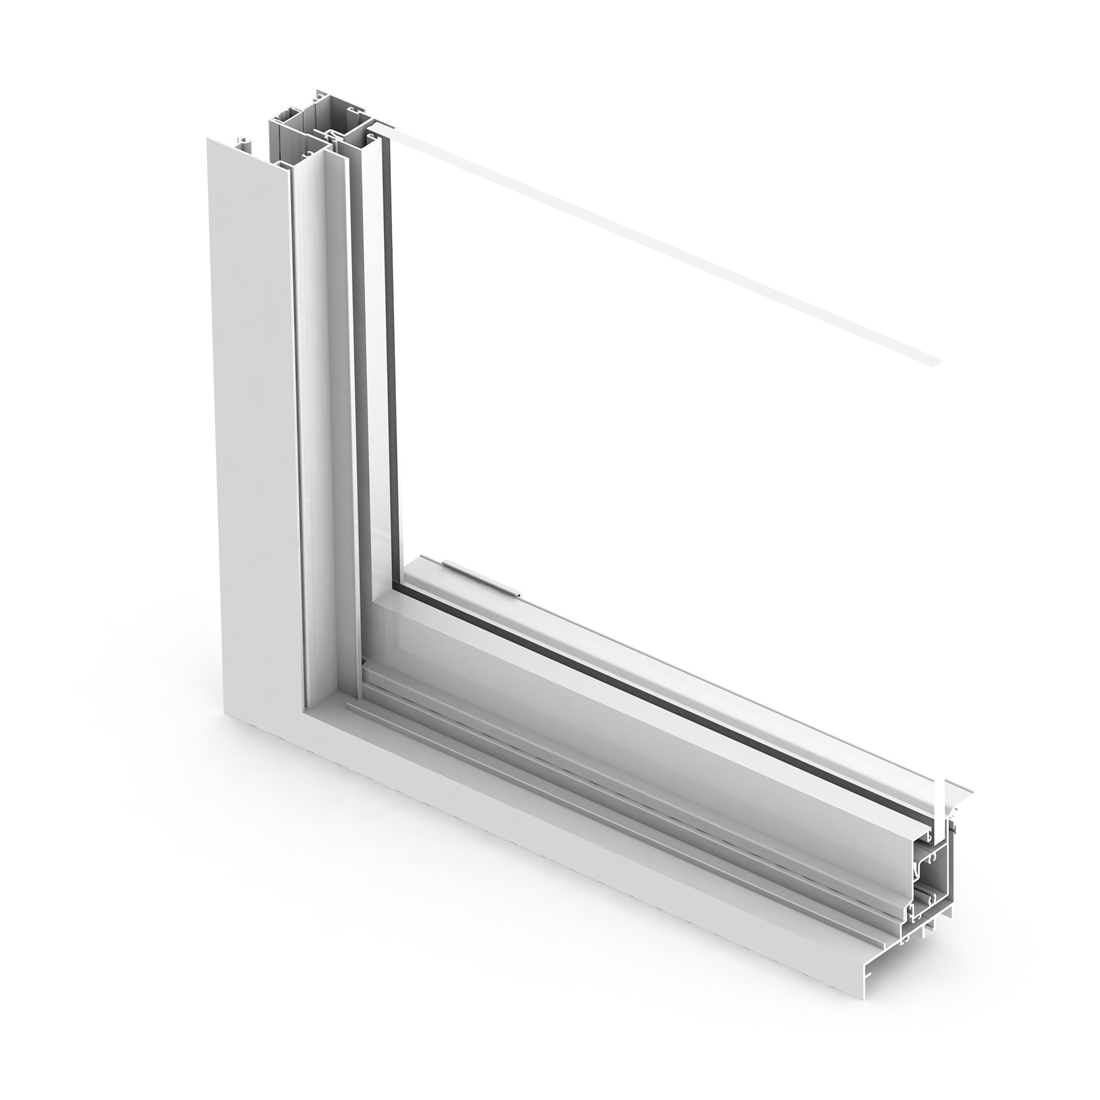 Impact window ES-EL100